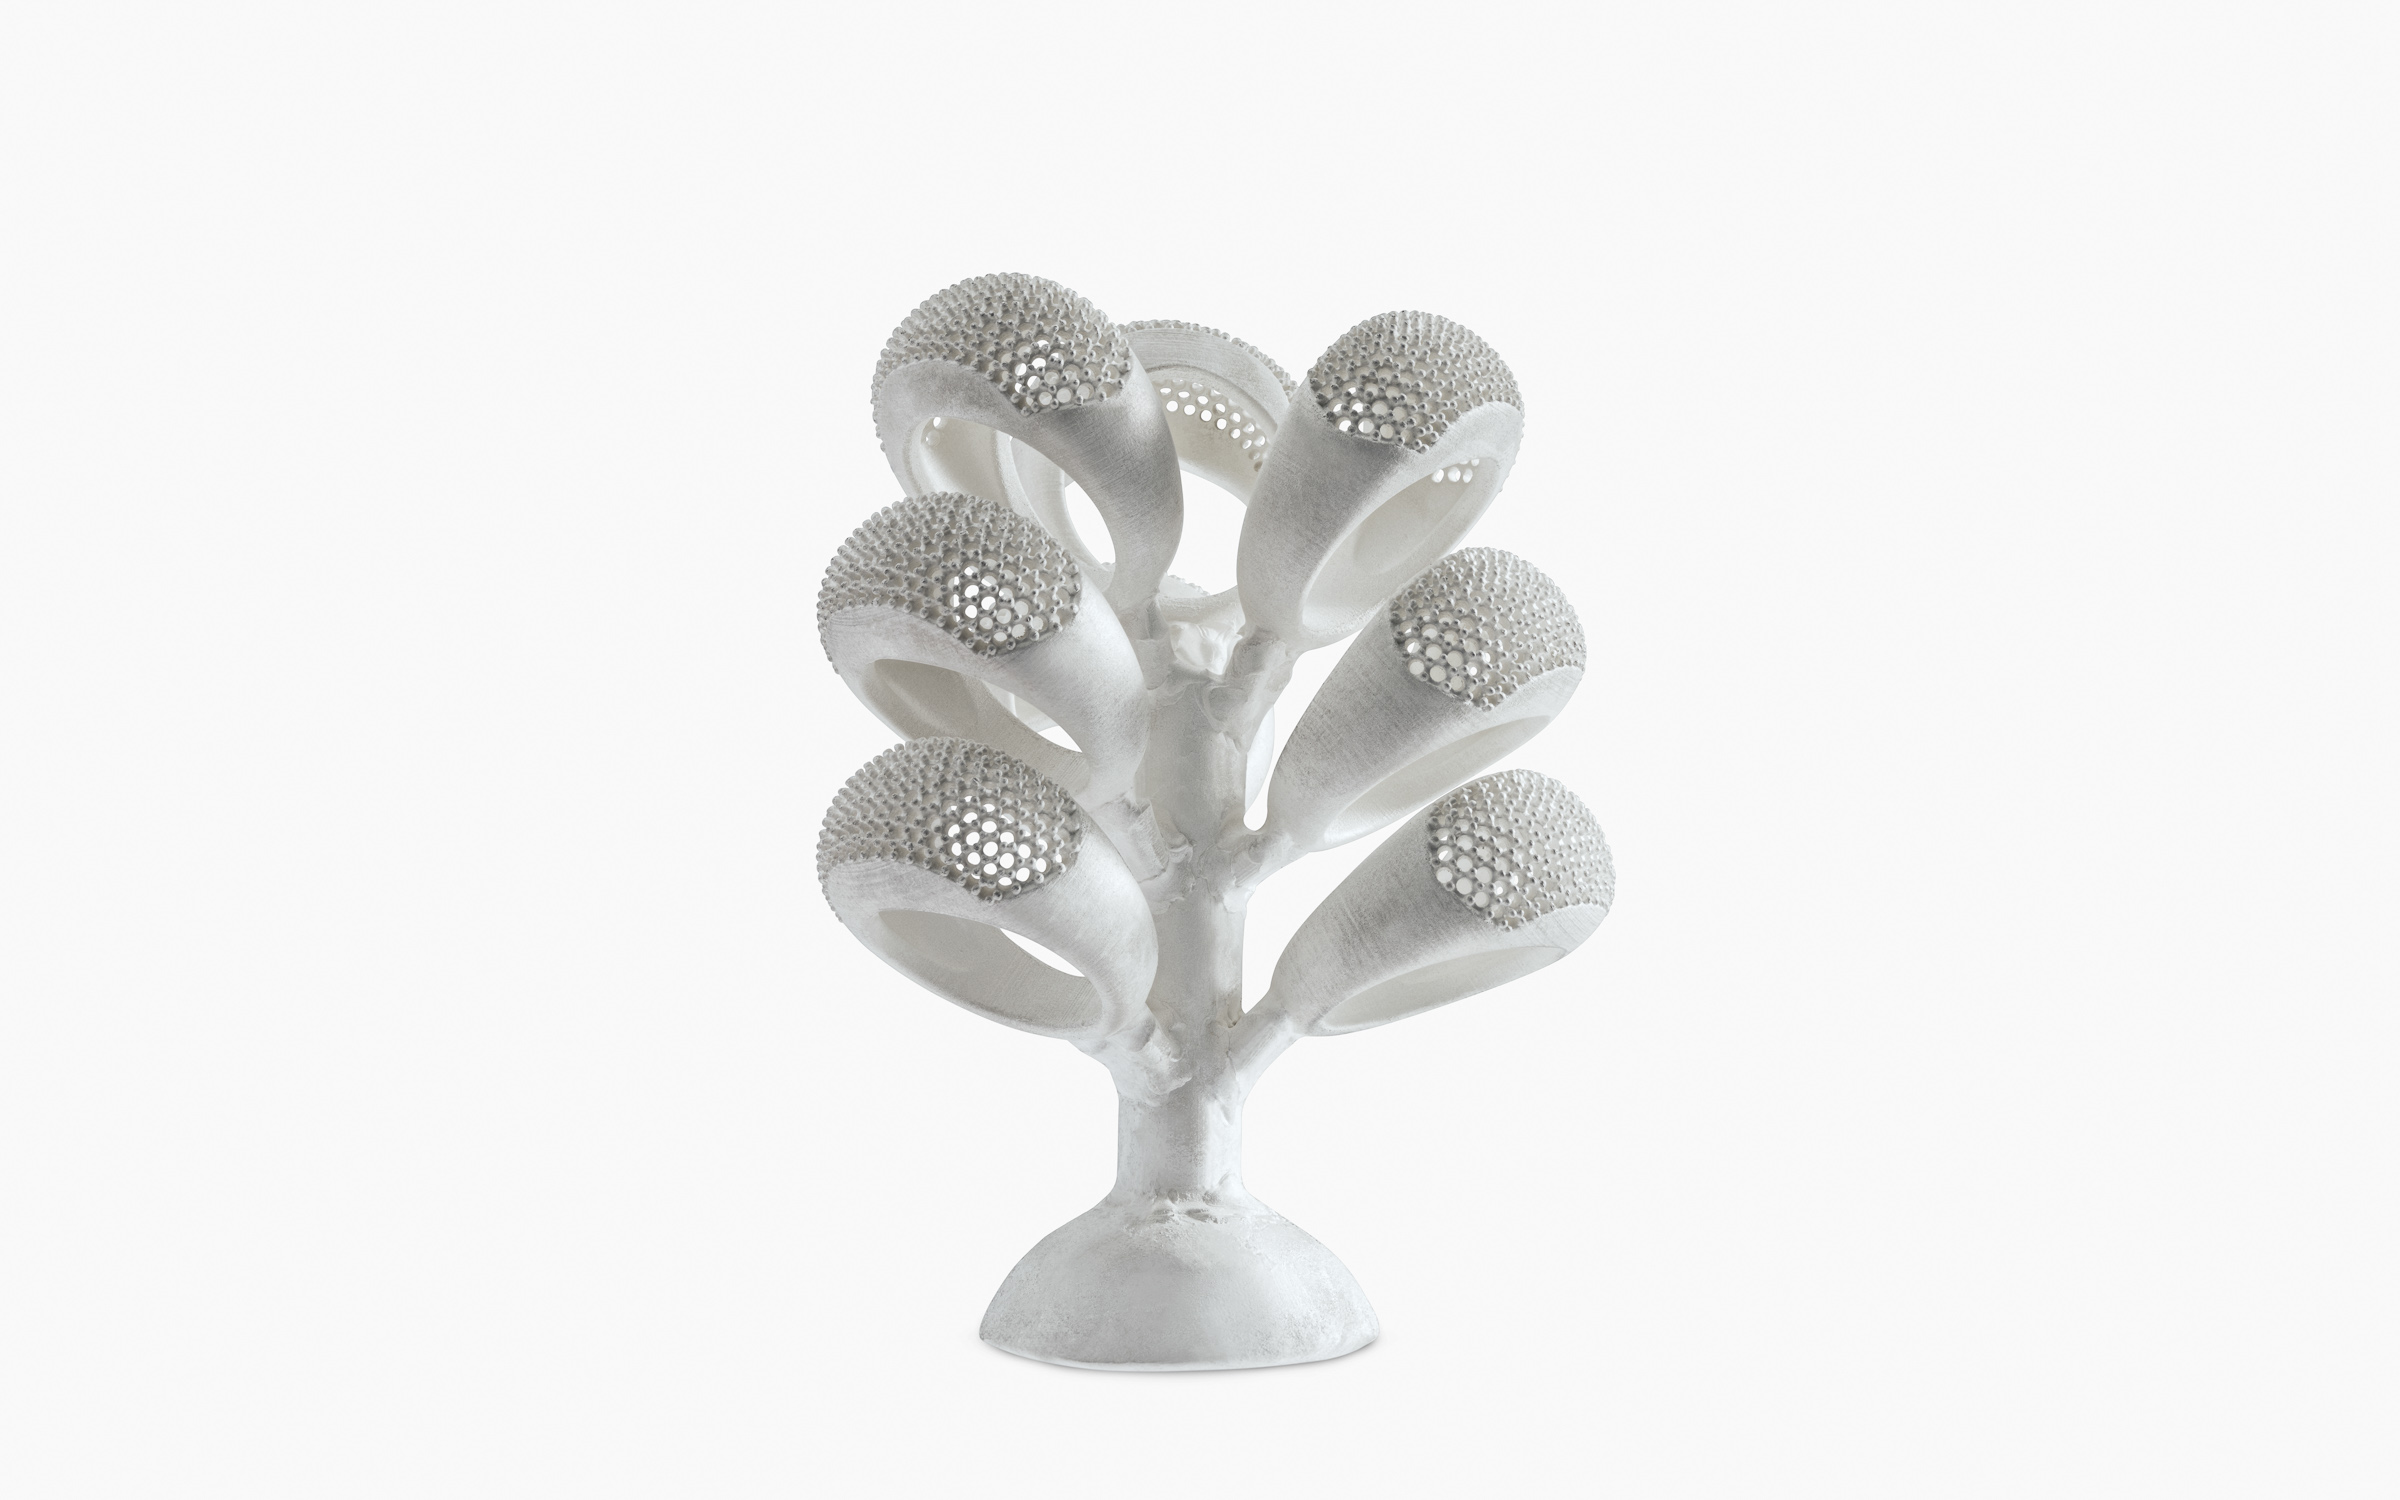 Jewelry 3D Printing Applications | 3D Hubs